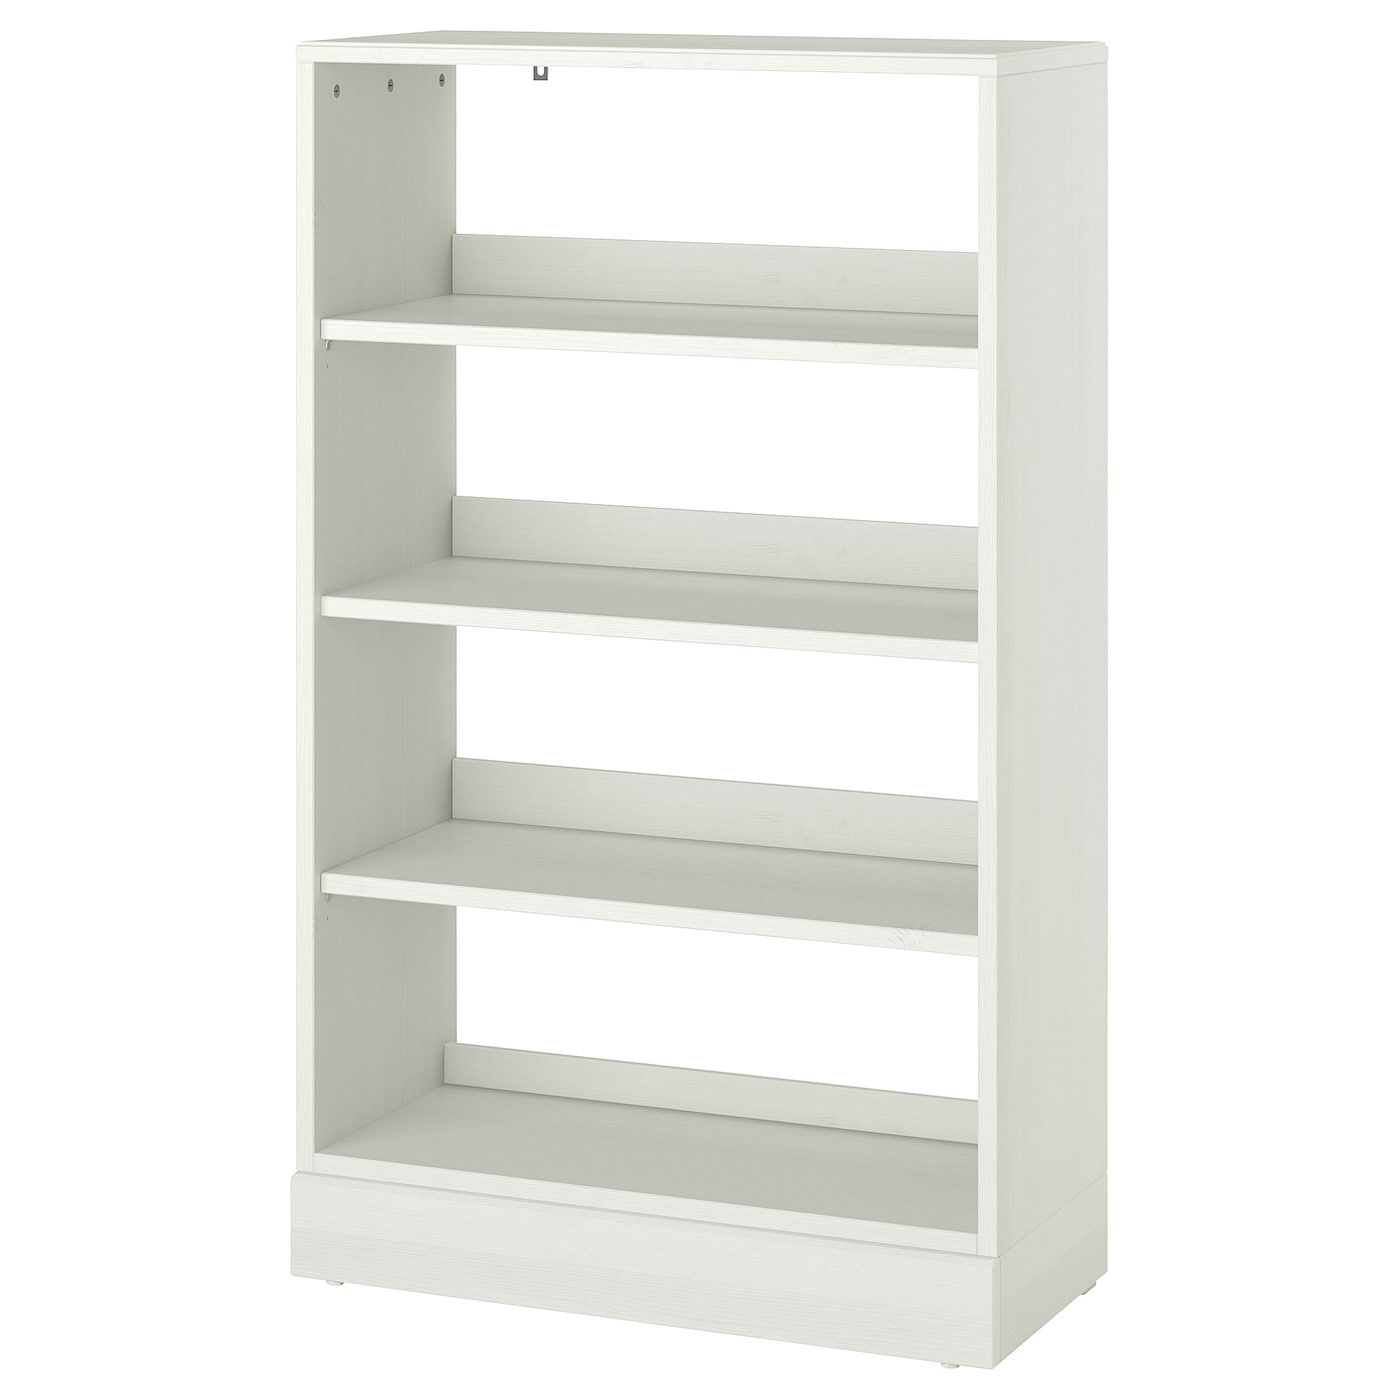 Ikea Havsta Shelving Unit With Base White Made Of Wood From Sustainable Sources Solid Pine With Crafted Details And A Brushed In 2020 Shelving Unit Shelving Ikea